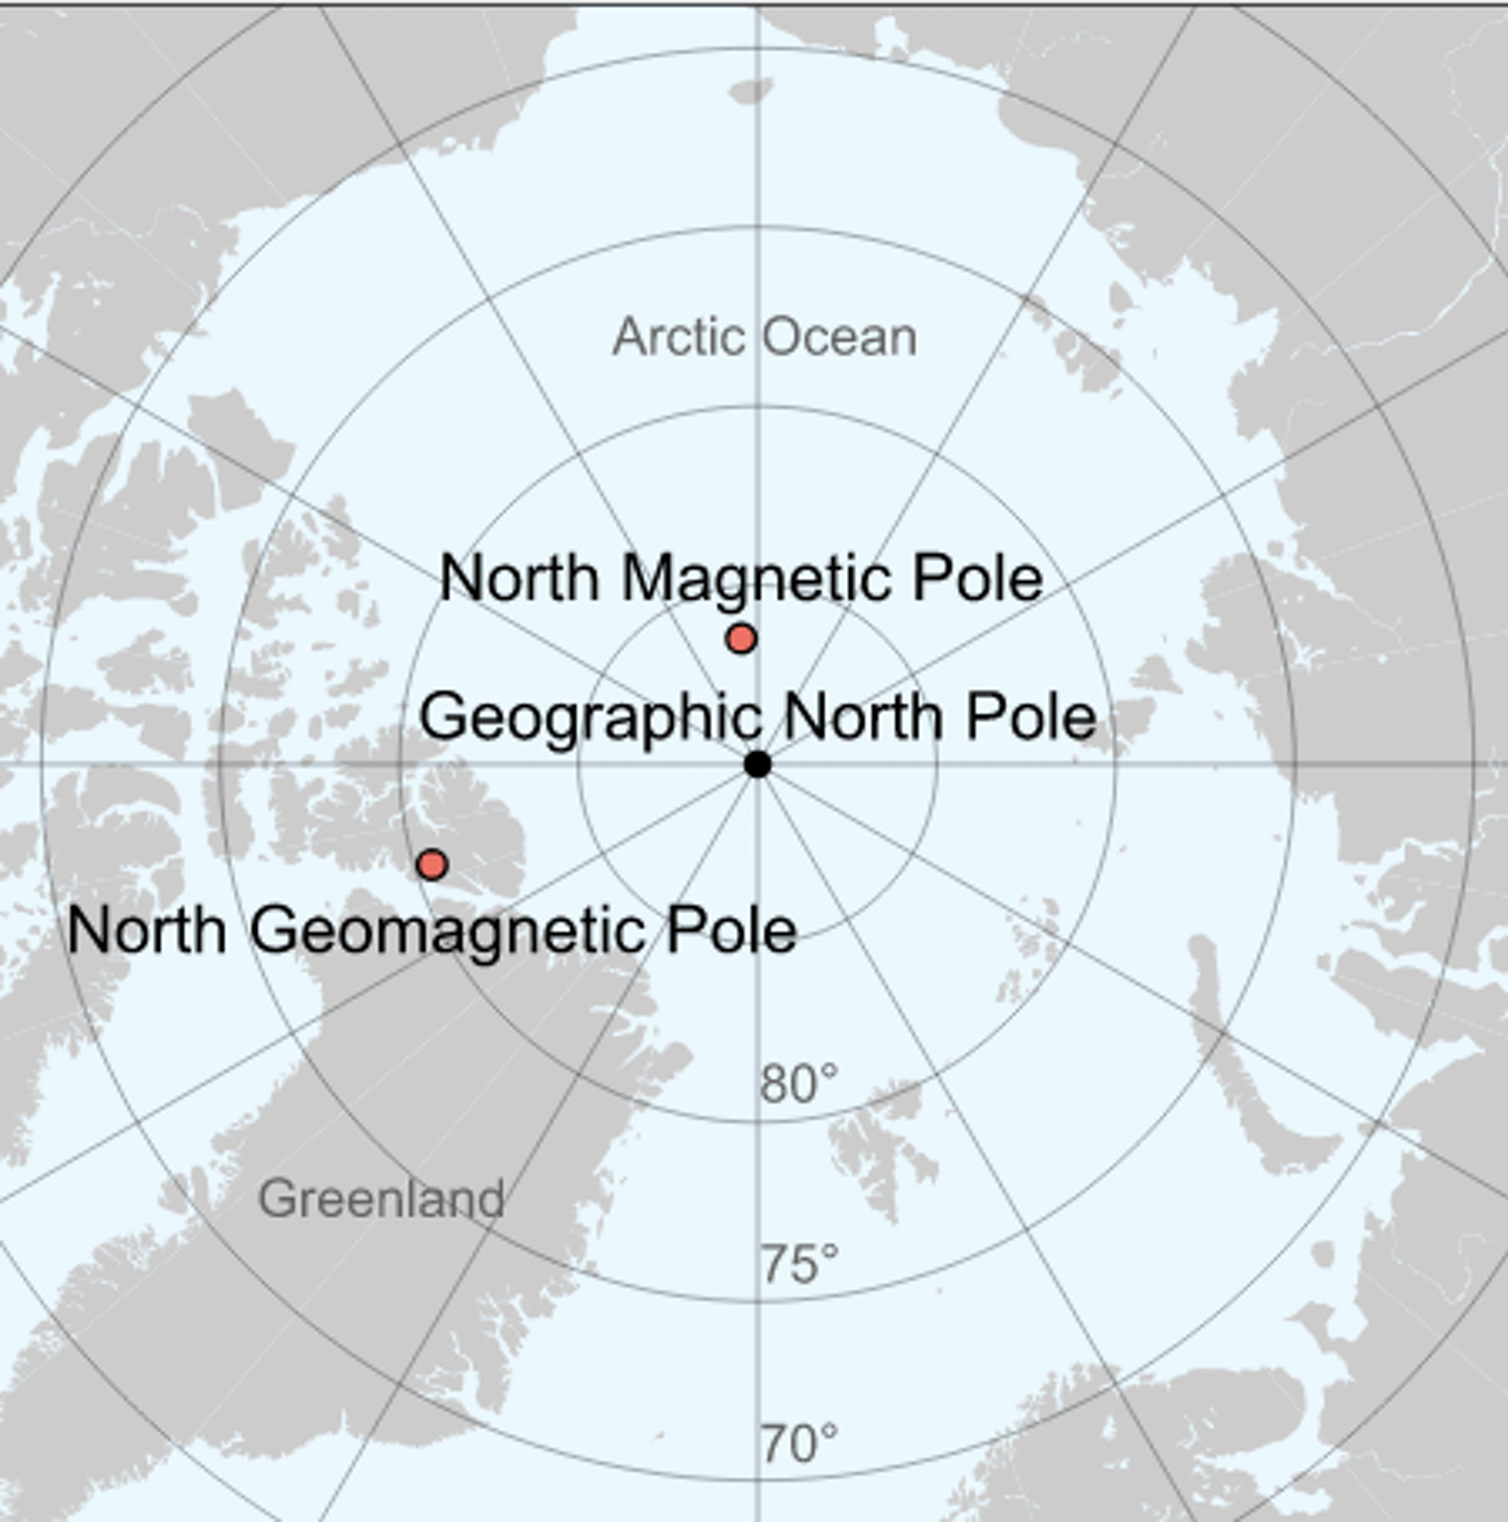 Magnetic versus geomagnetic poles. wikipedia., CC BY-SA